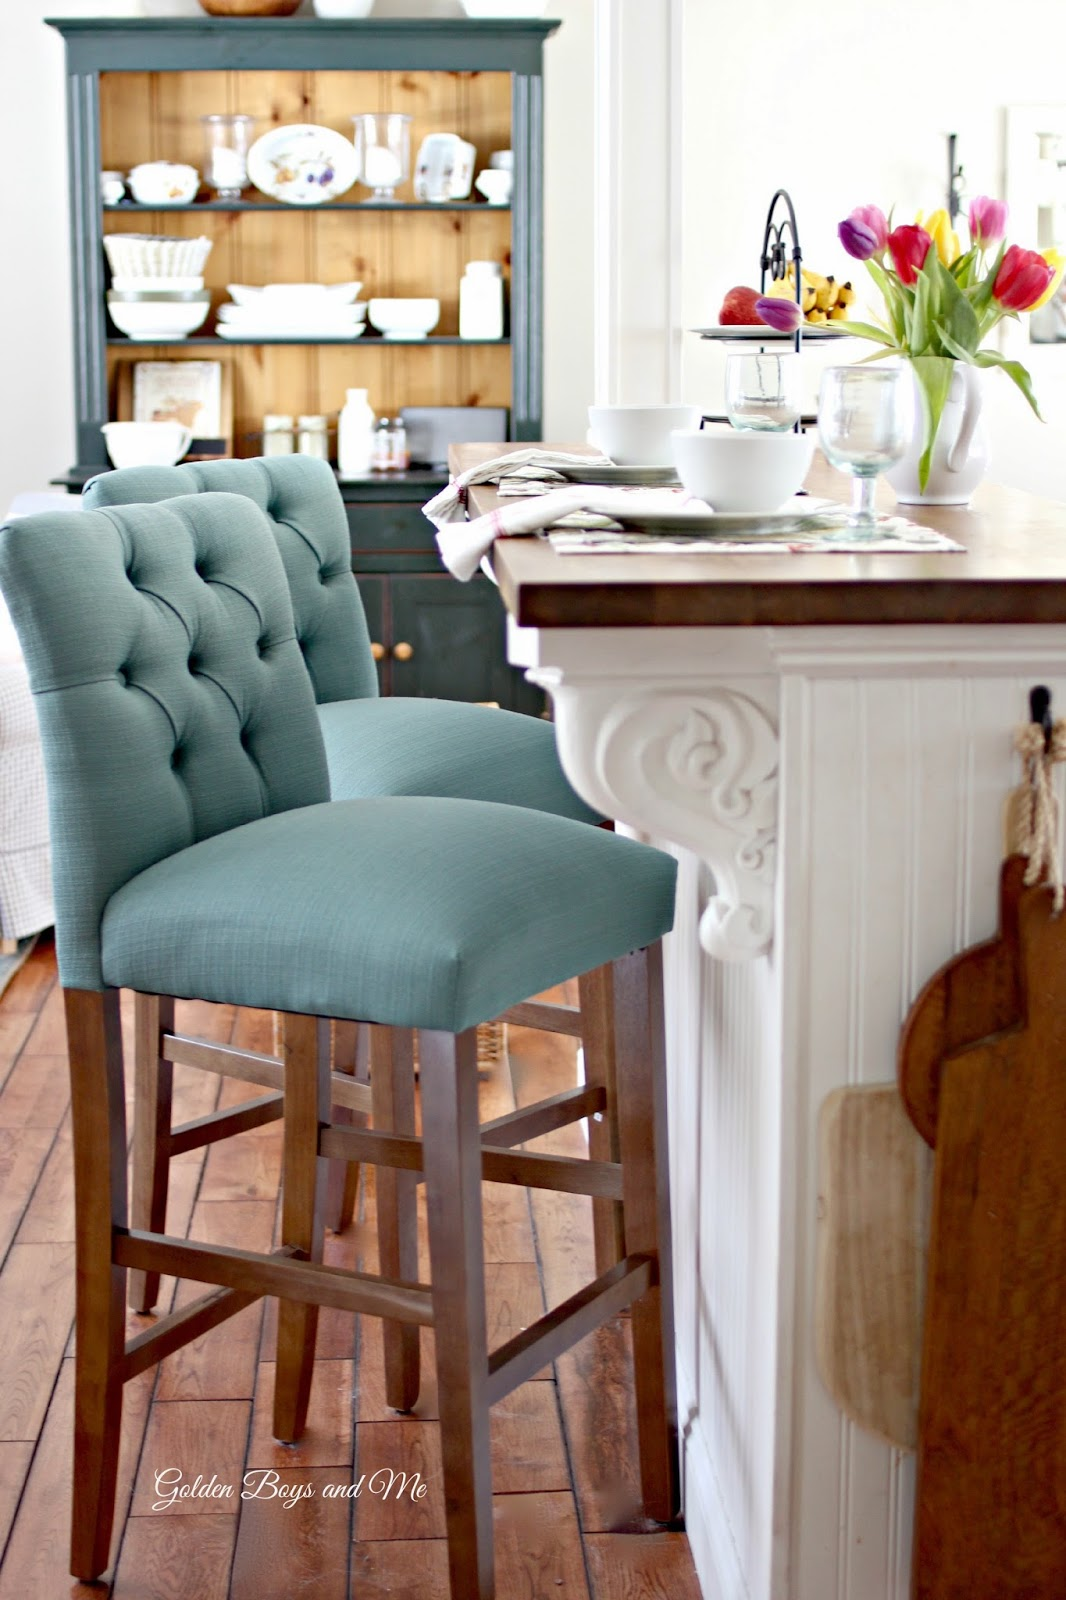 Target Threshold Tufted bar stool-www.goldenboysandme.com